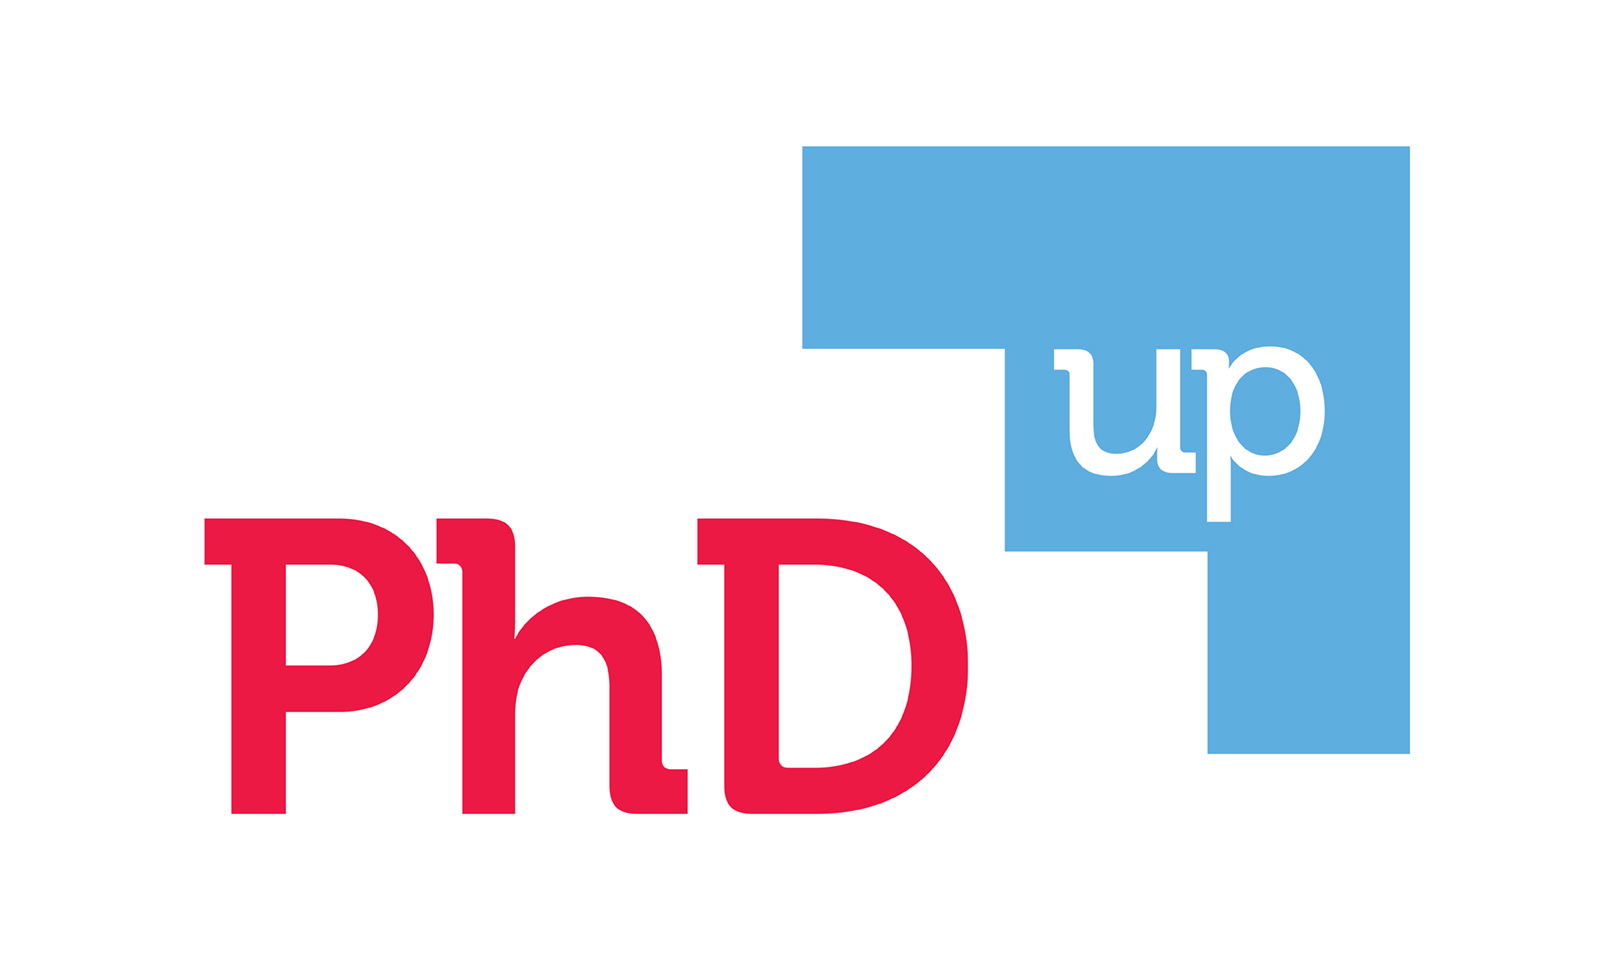 PhD Up logo